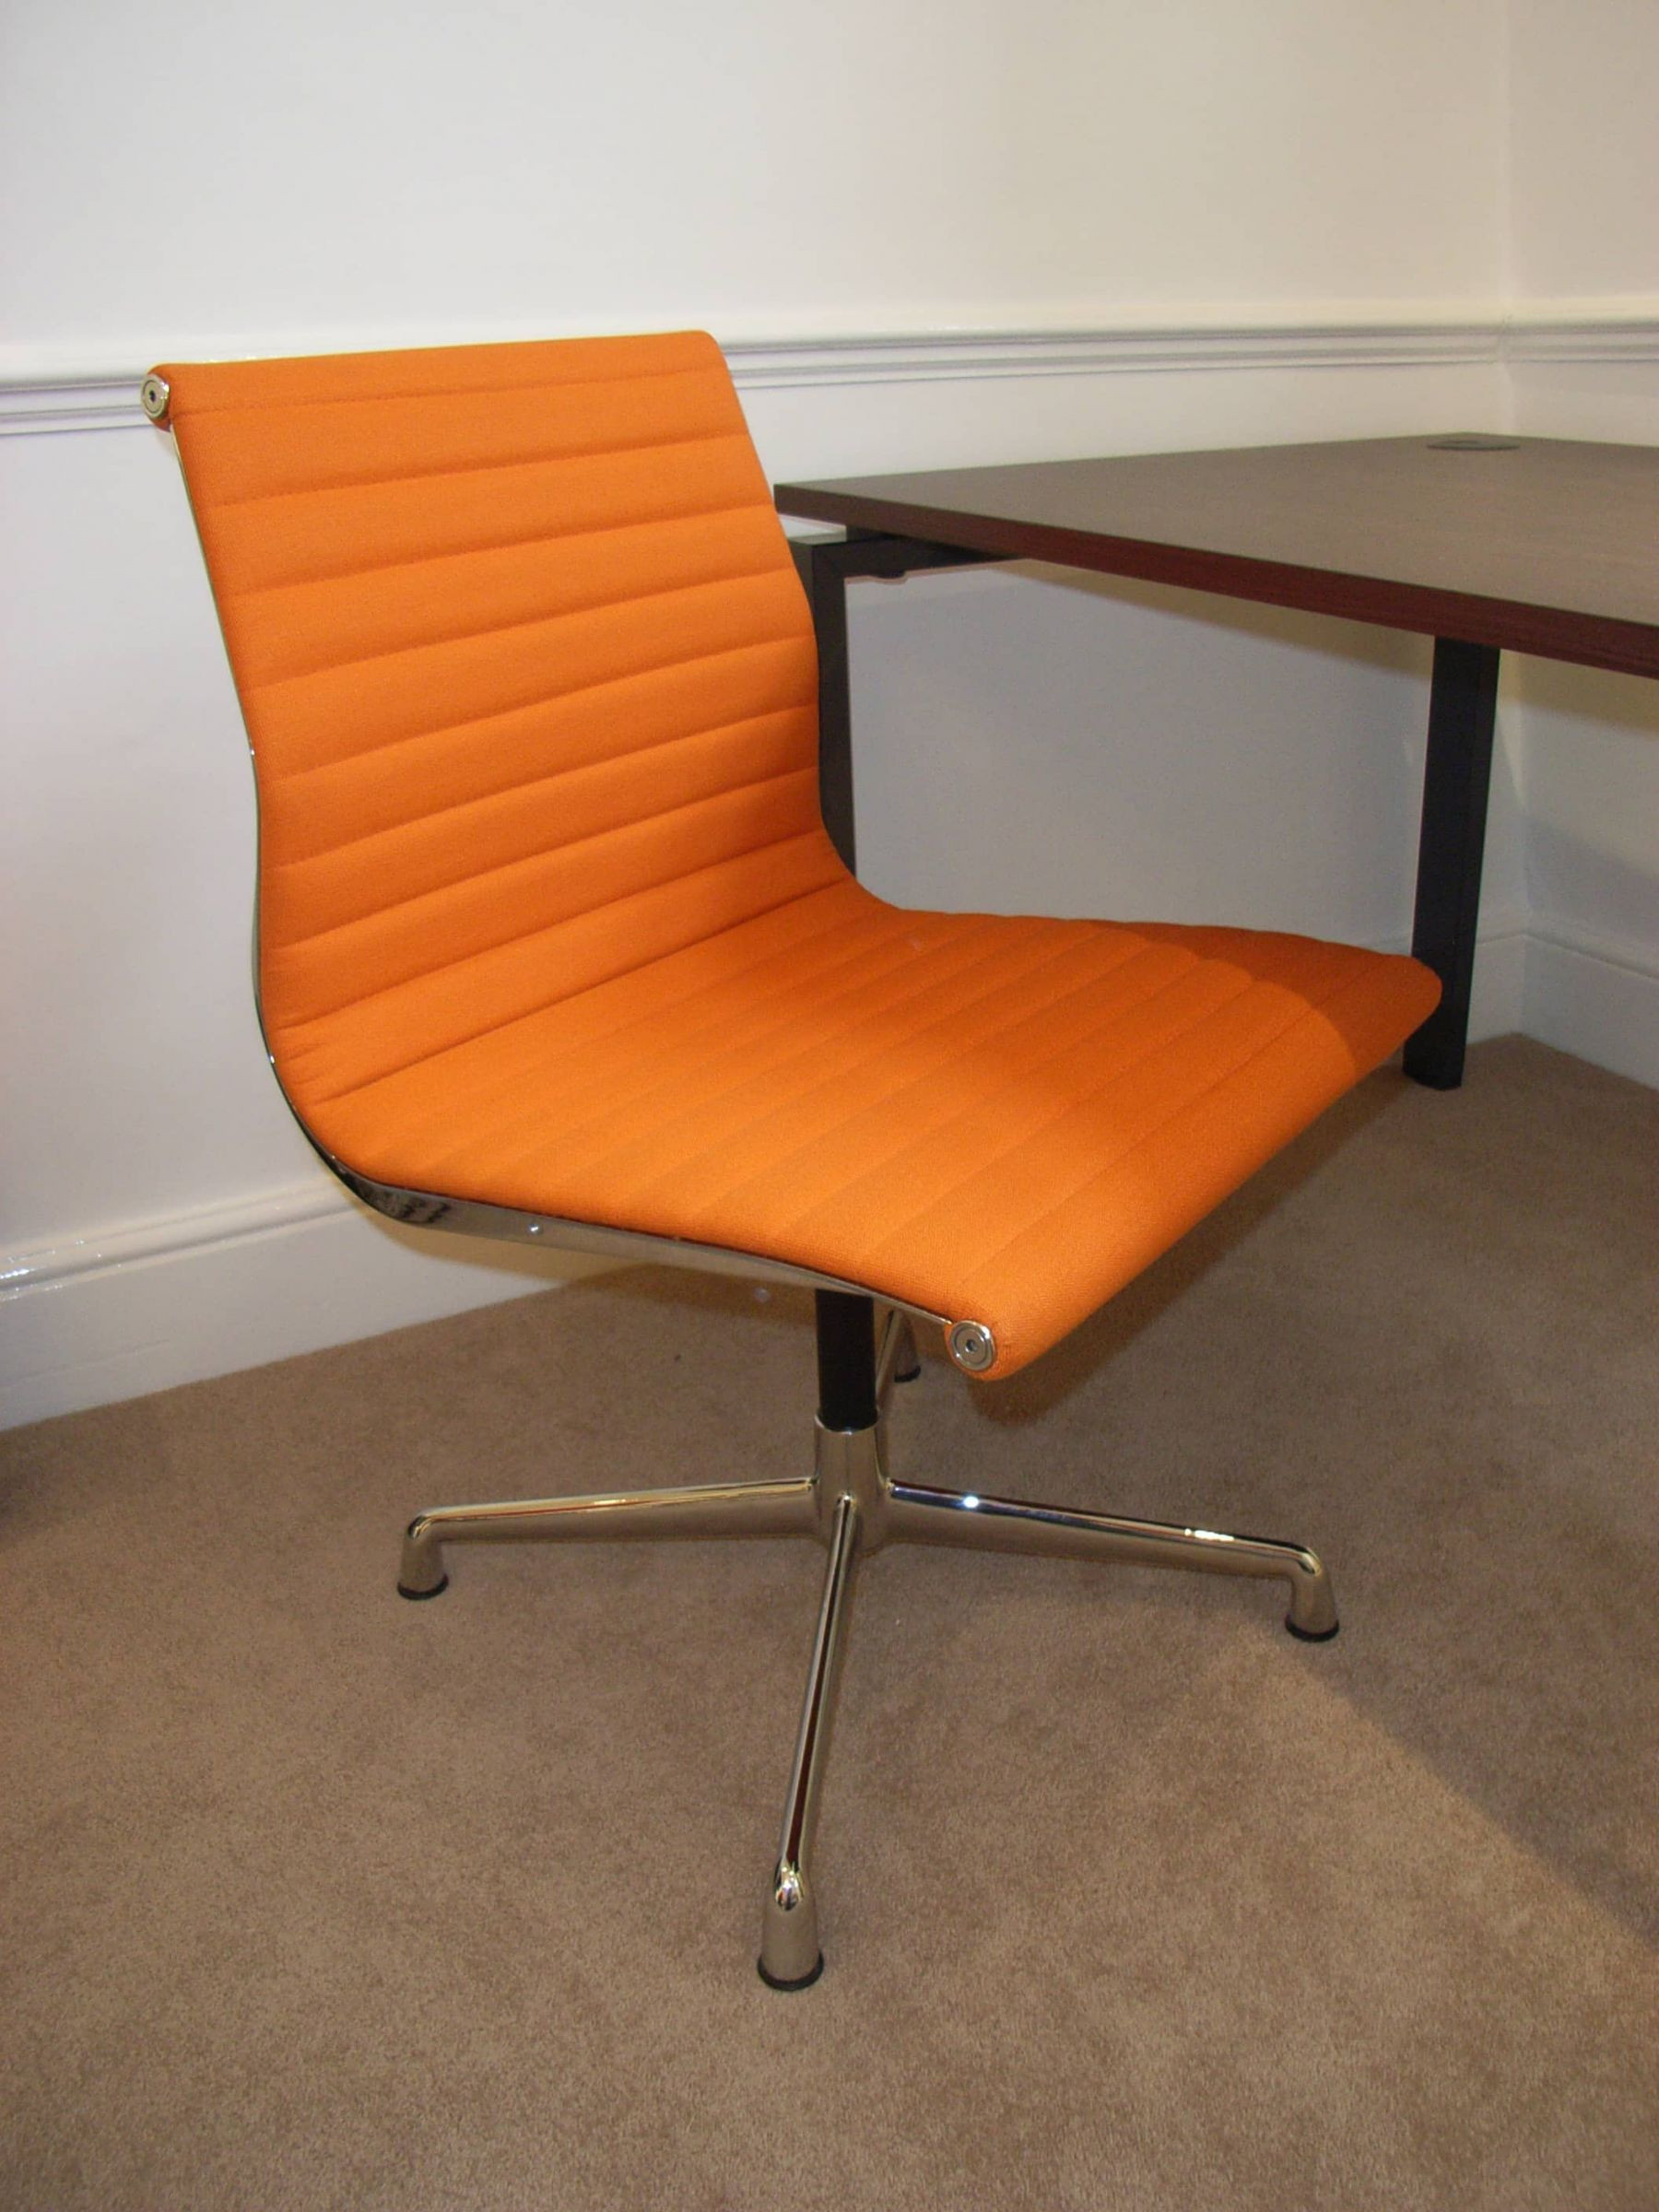 Best ideas about Orange Office Chair . Save or Pin Furniture Style Within Now.